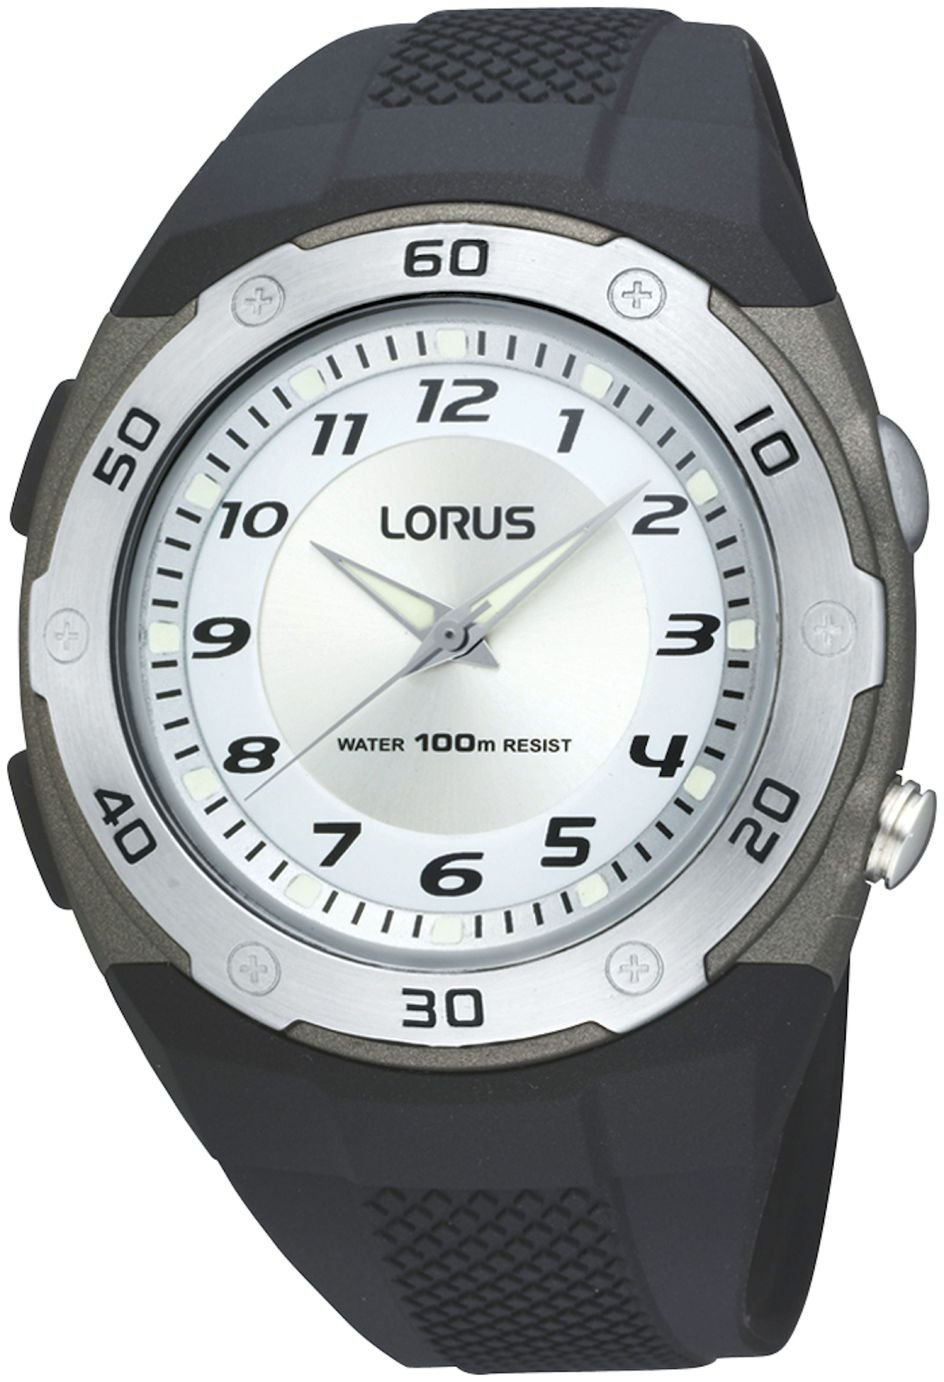 Lorus Men's Black Rubber Strap LED Side Light Watch